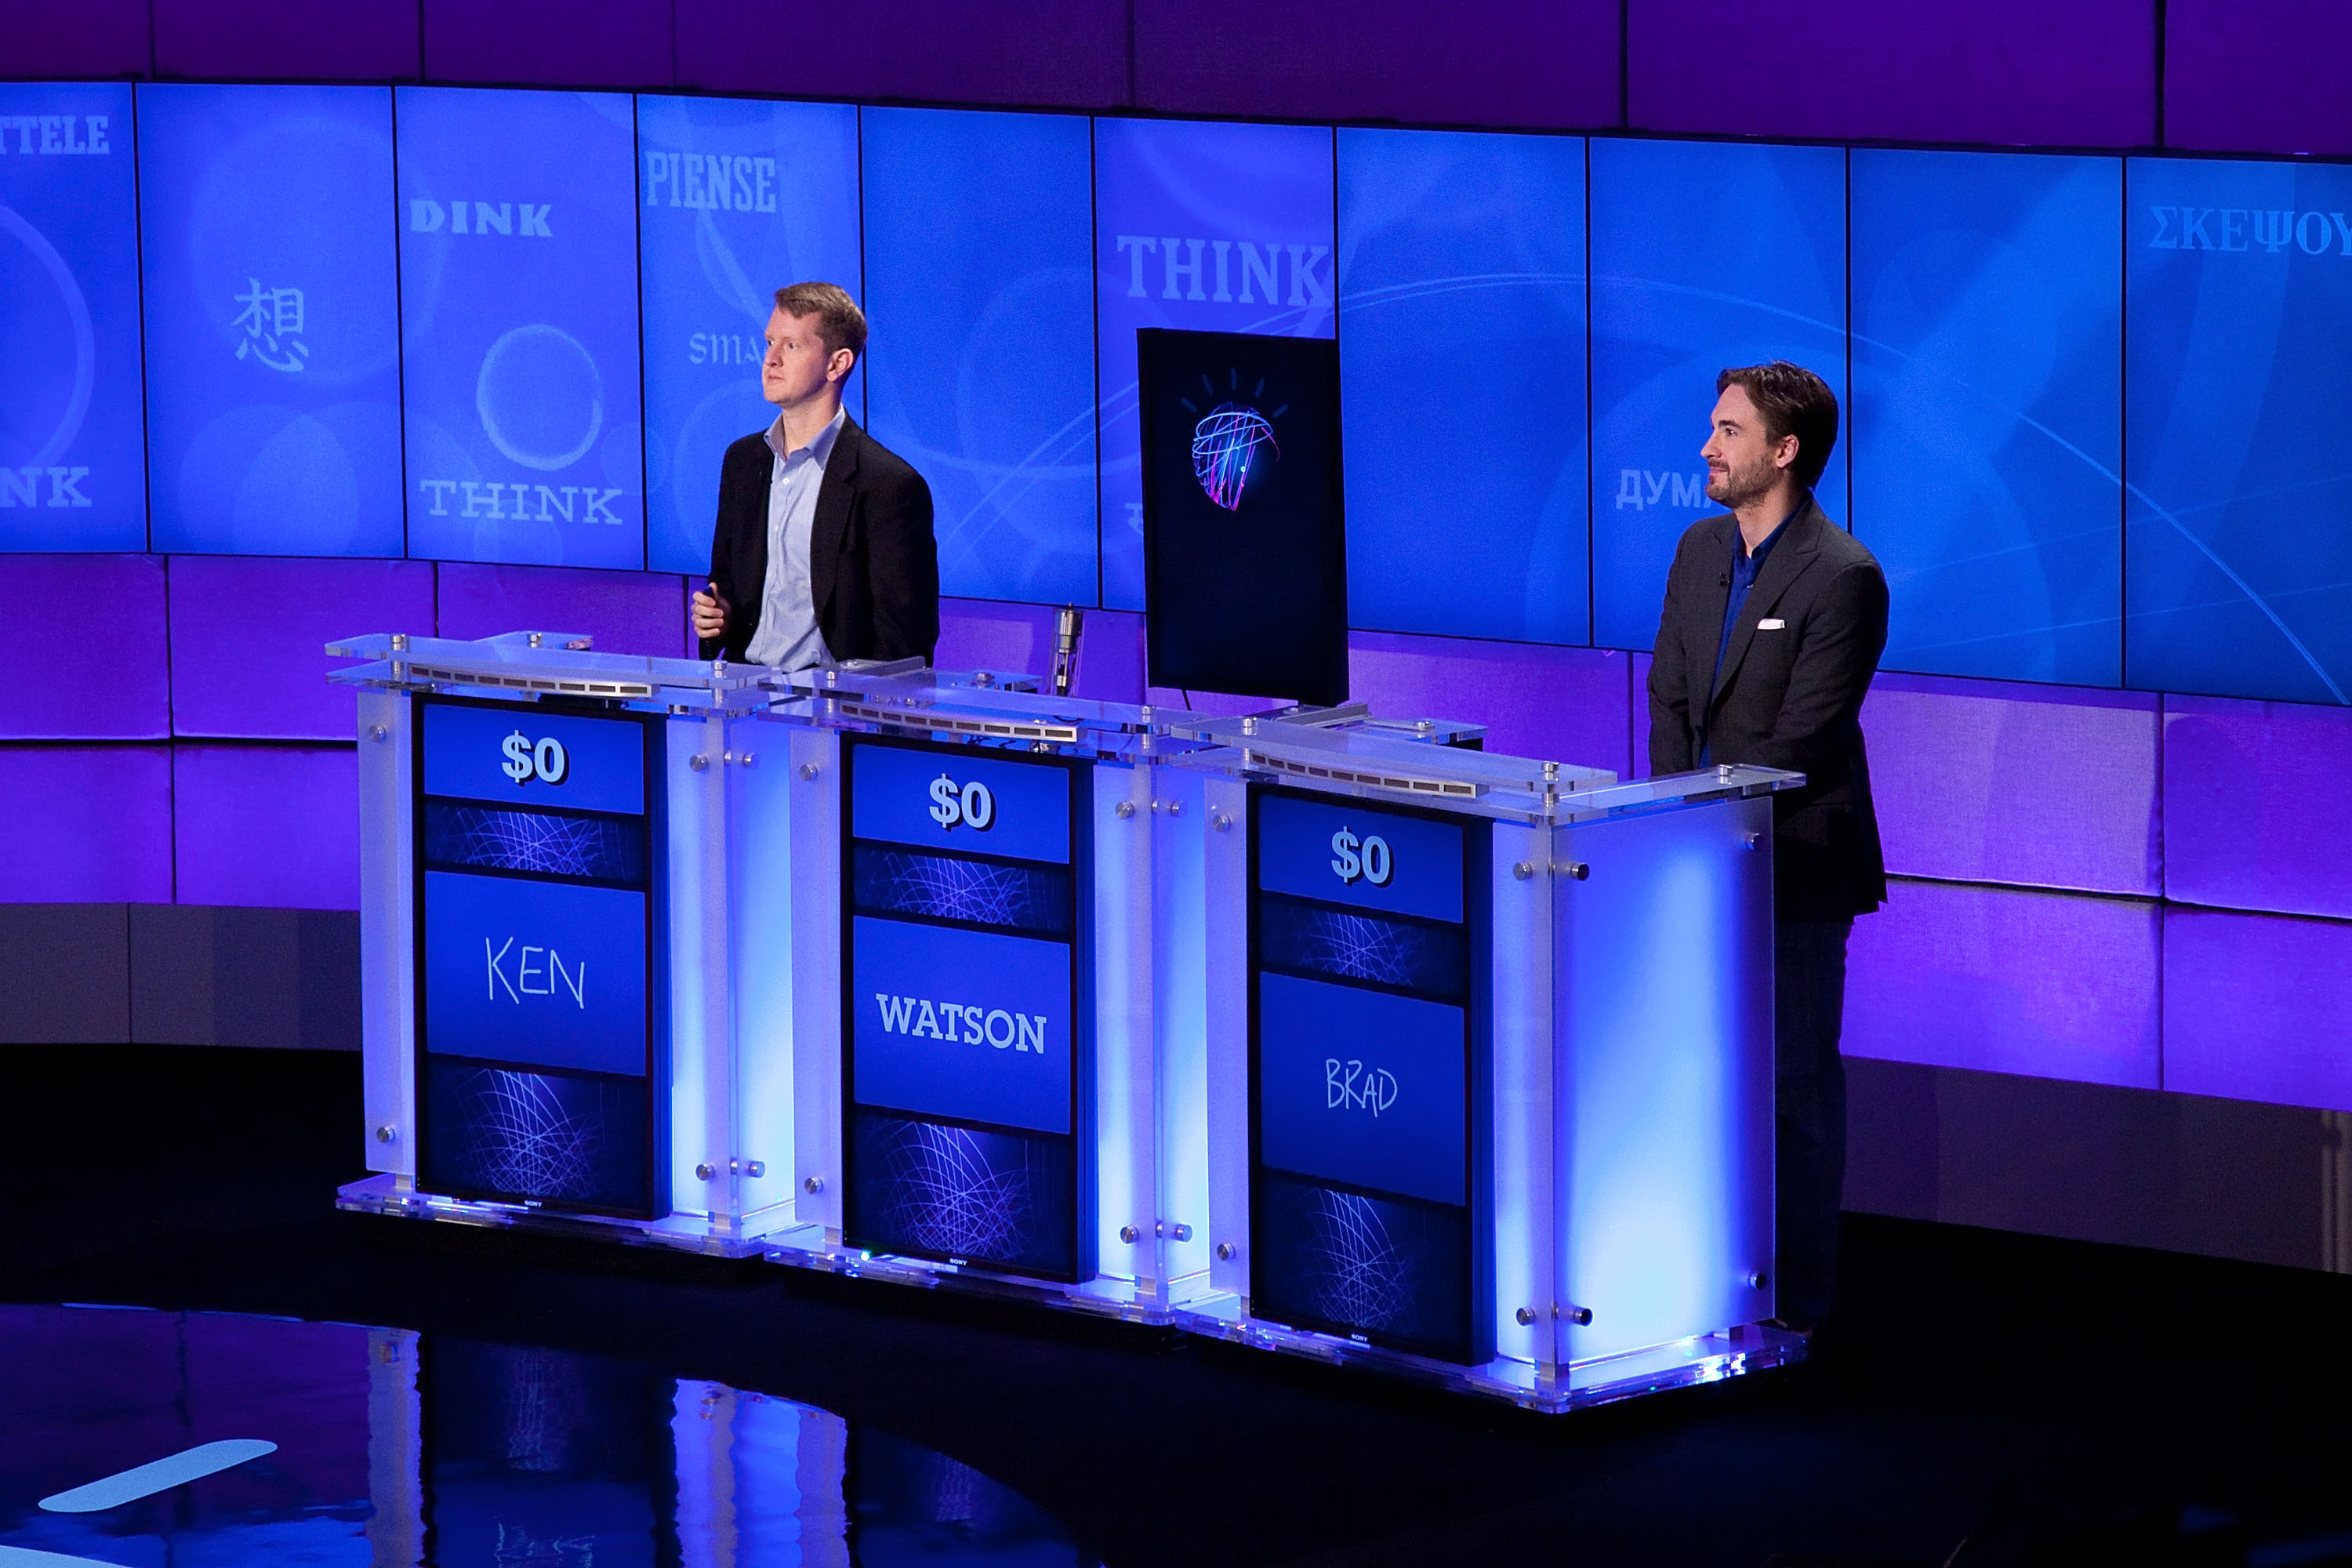 """Jeopardy!"" & IBM Man V. Machine Press Conference"